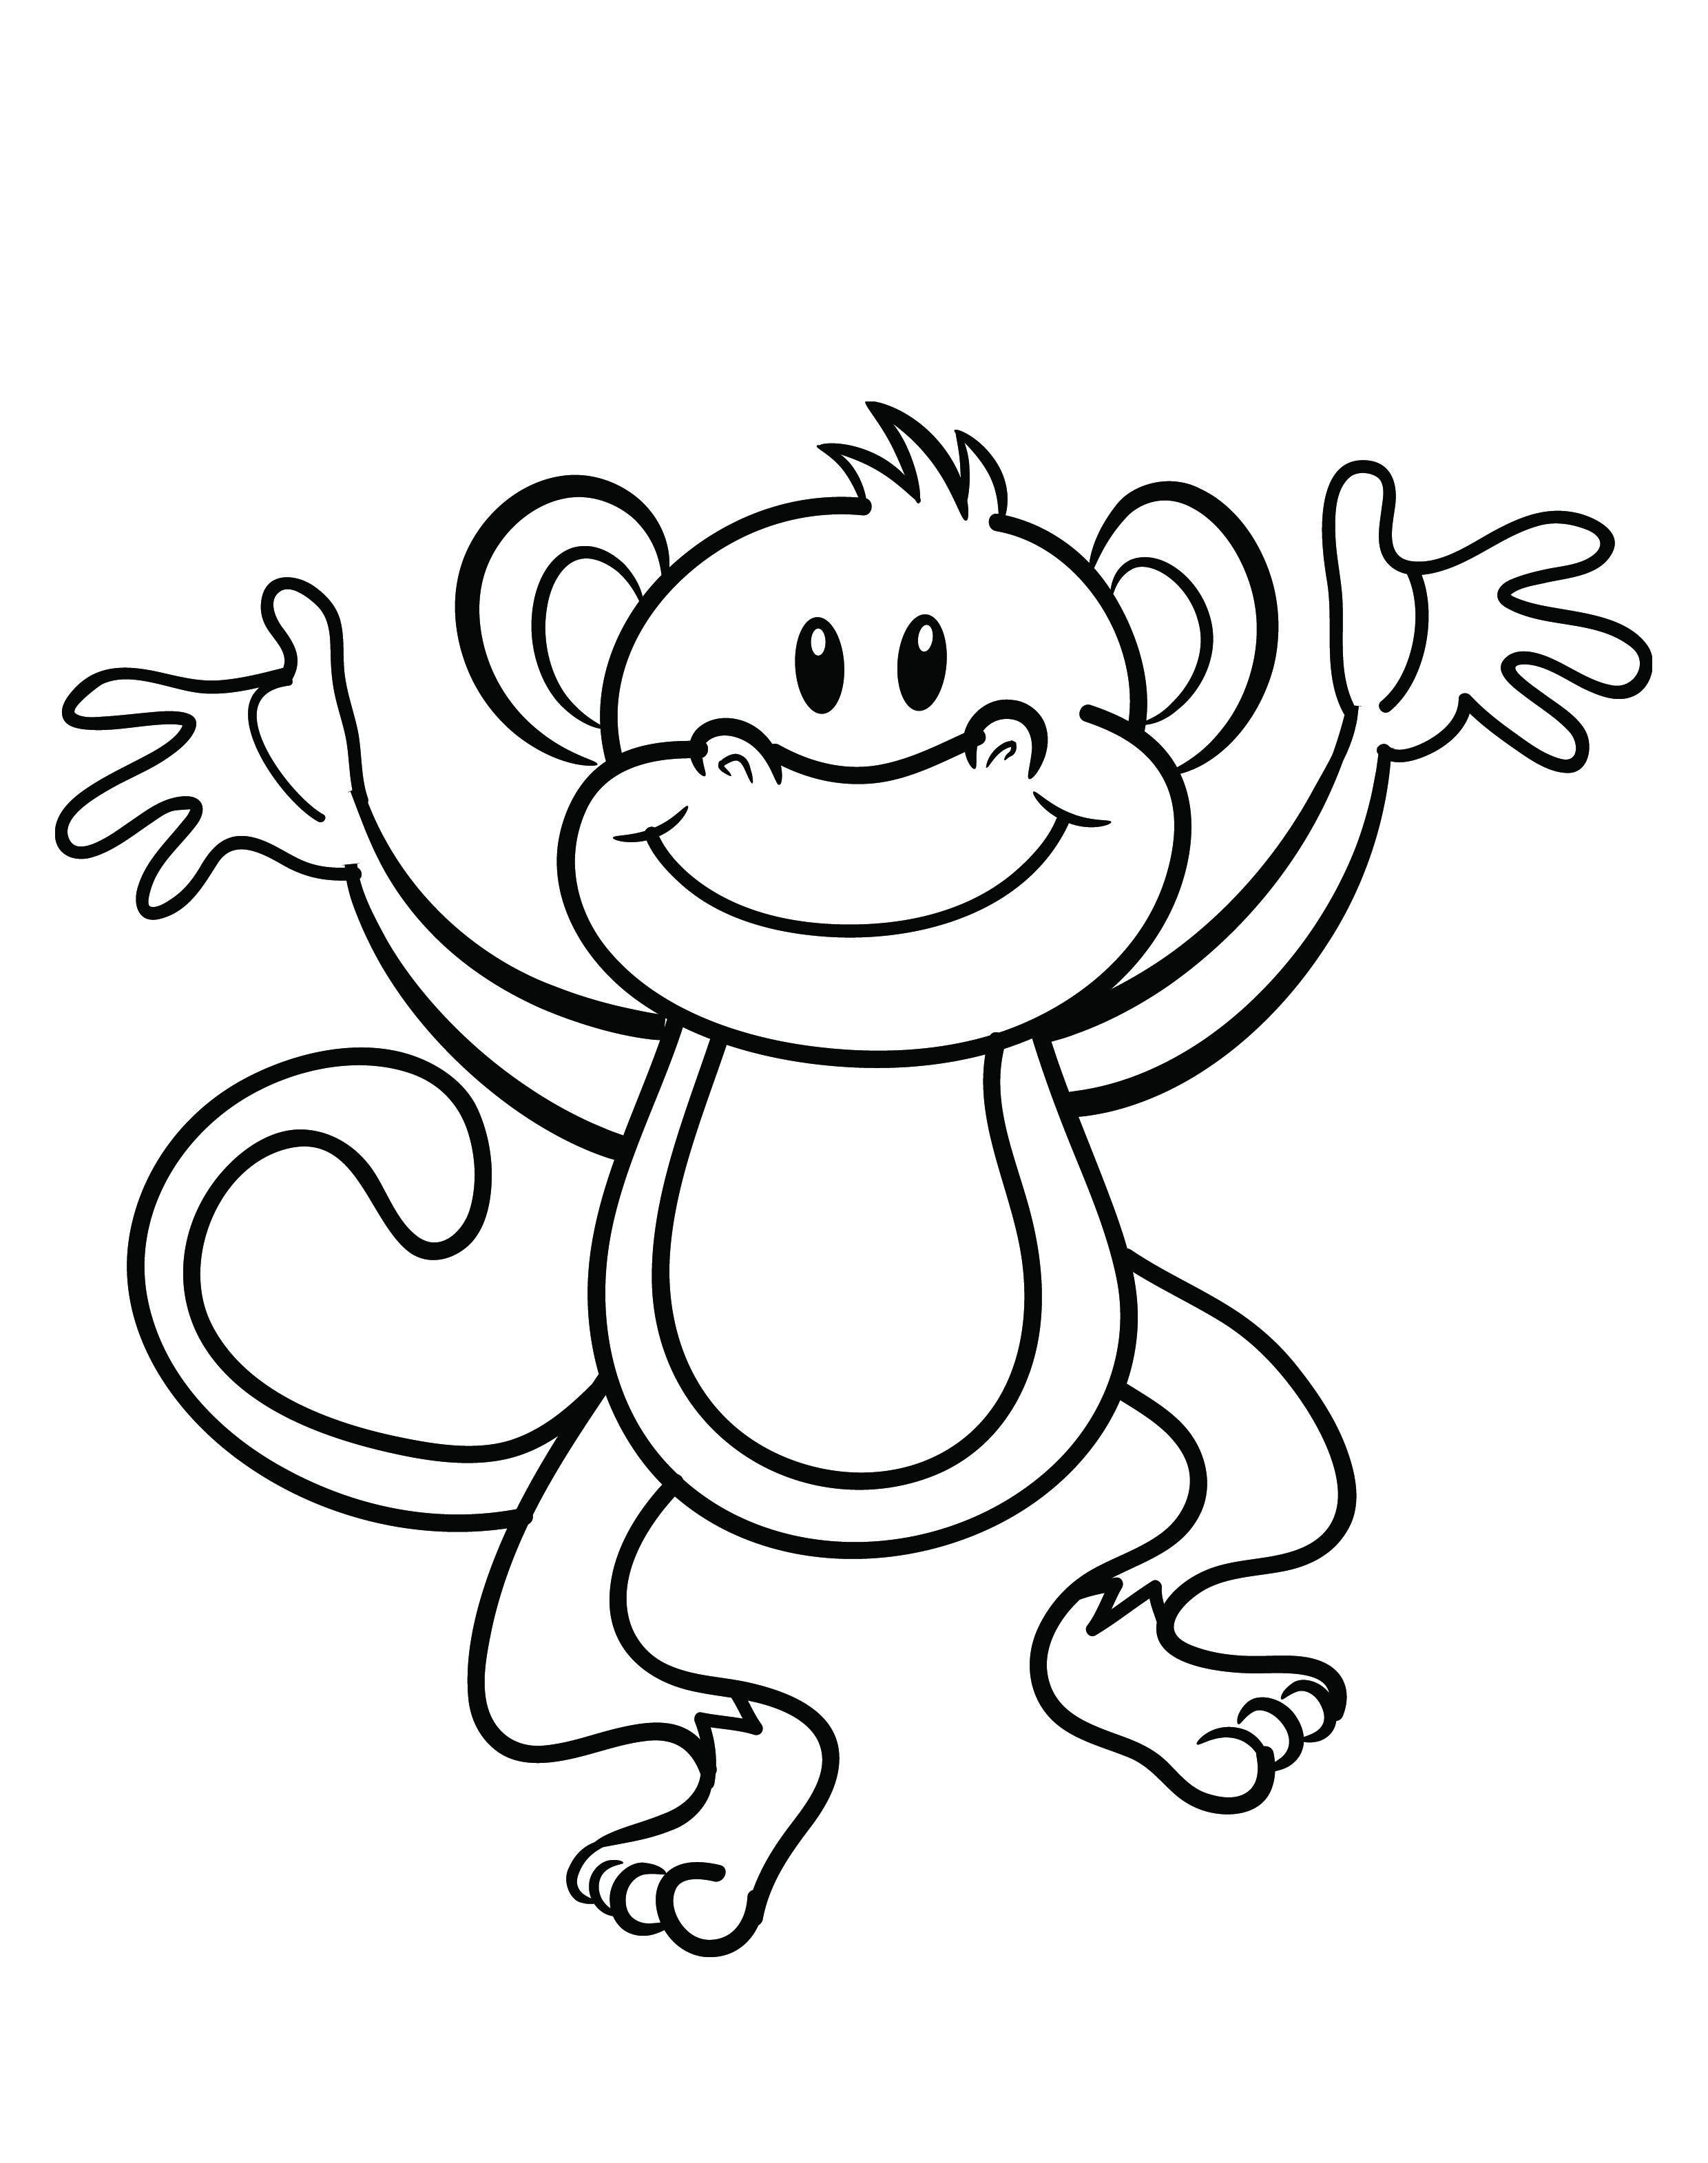 mo monkey coloring page to print